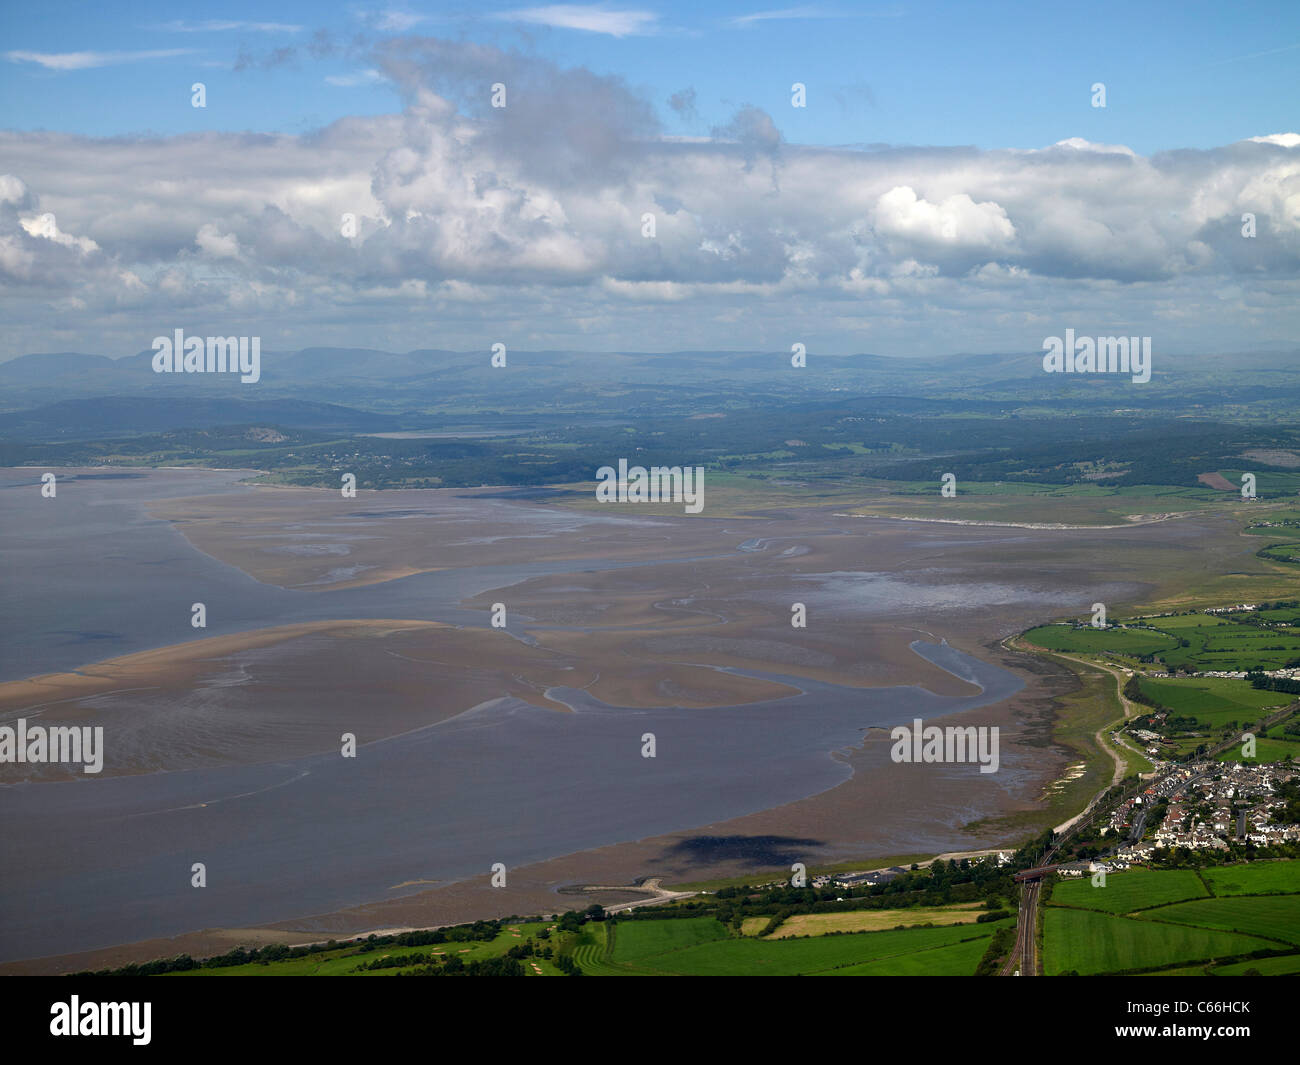 Morcambe Bay, North West England, from the air looking north to Grange over Sands - Stock Image